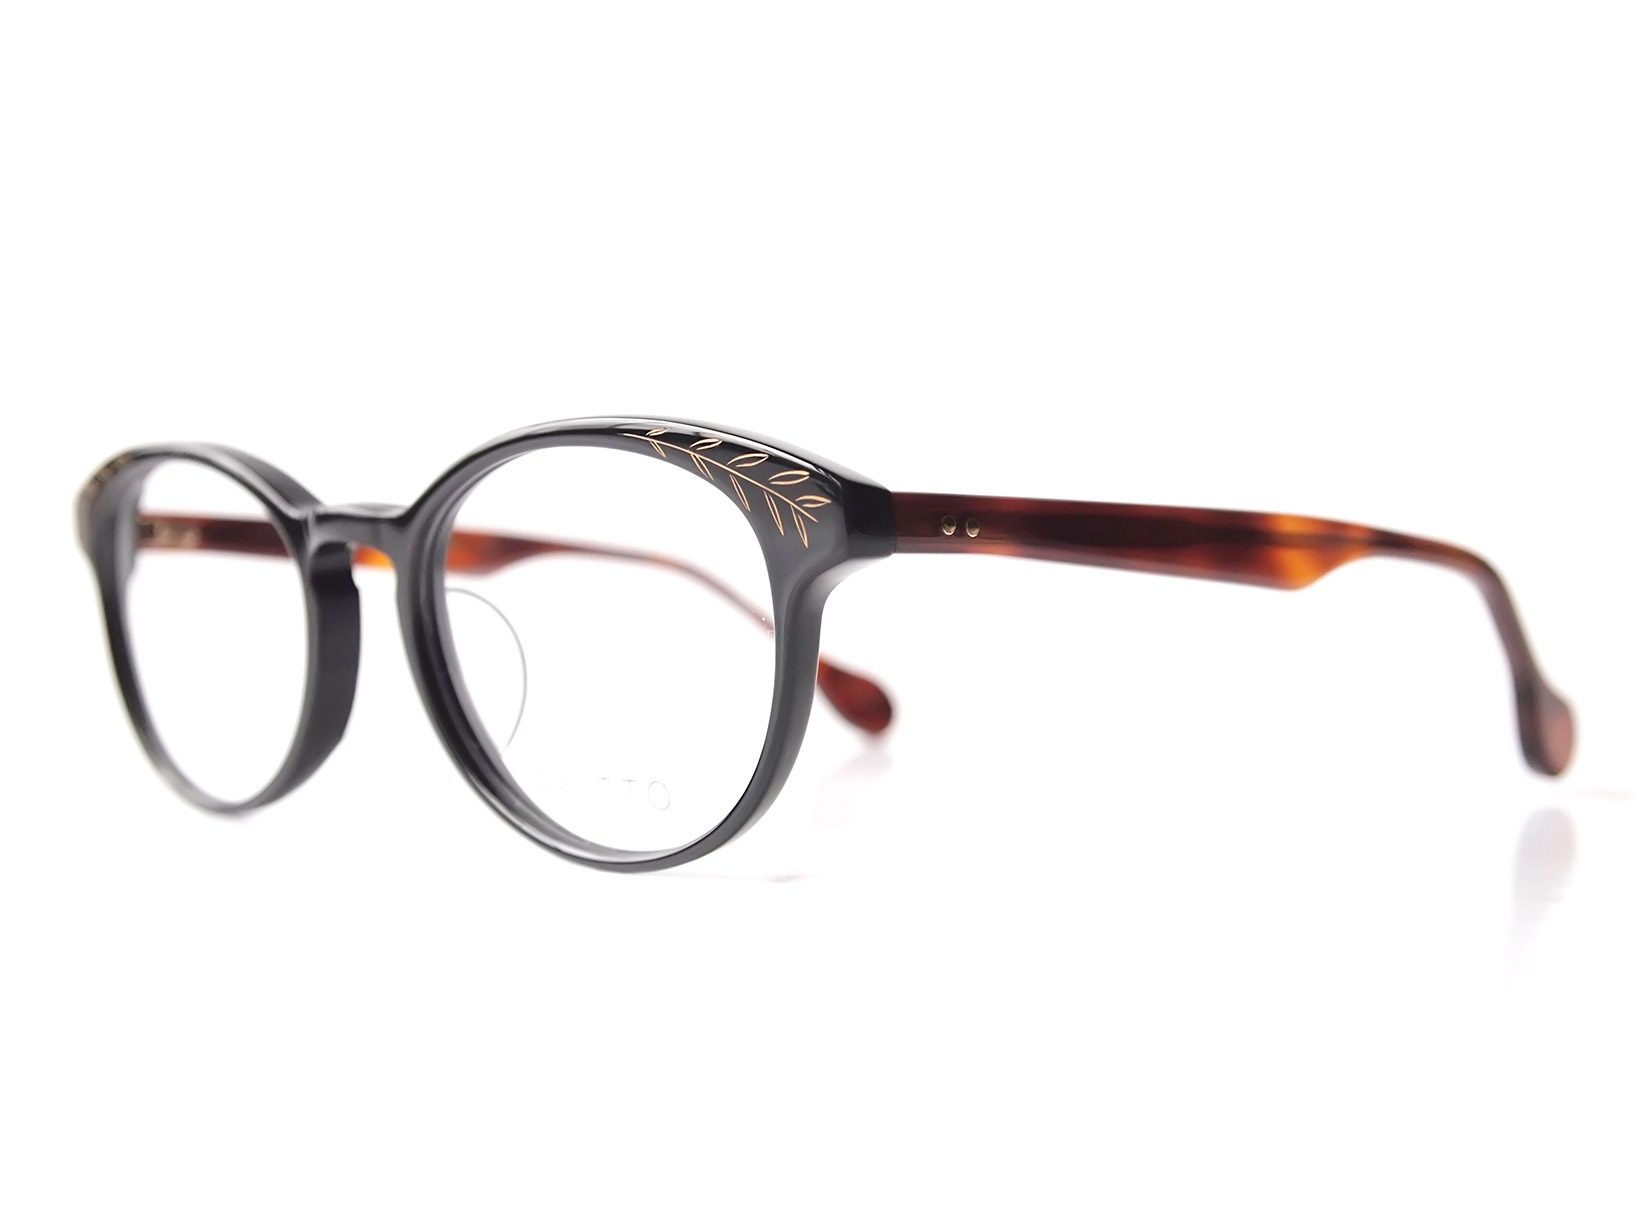 AKITTO 2017-3rd kin color BK size:48□19 material: acetate+gold price:39800-(+tax)